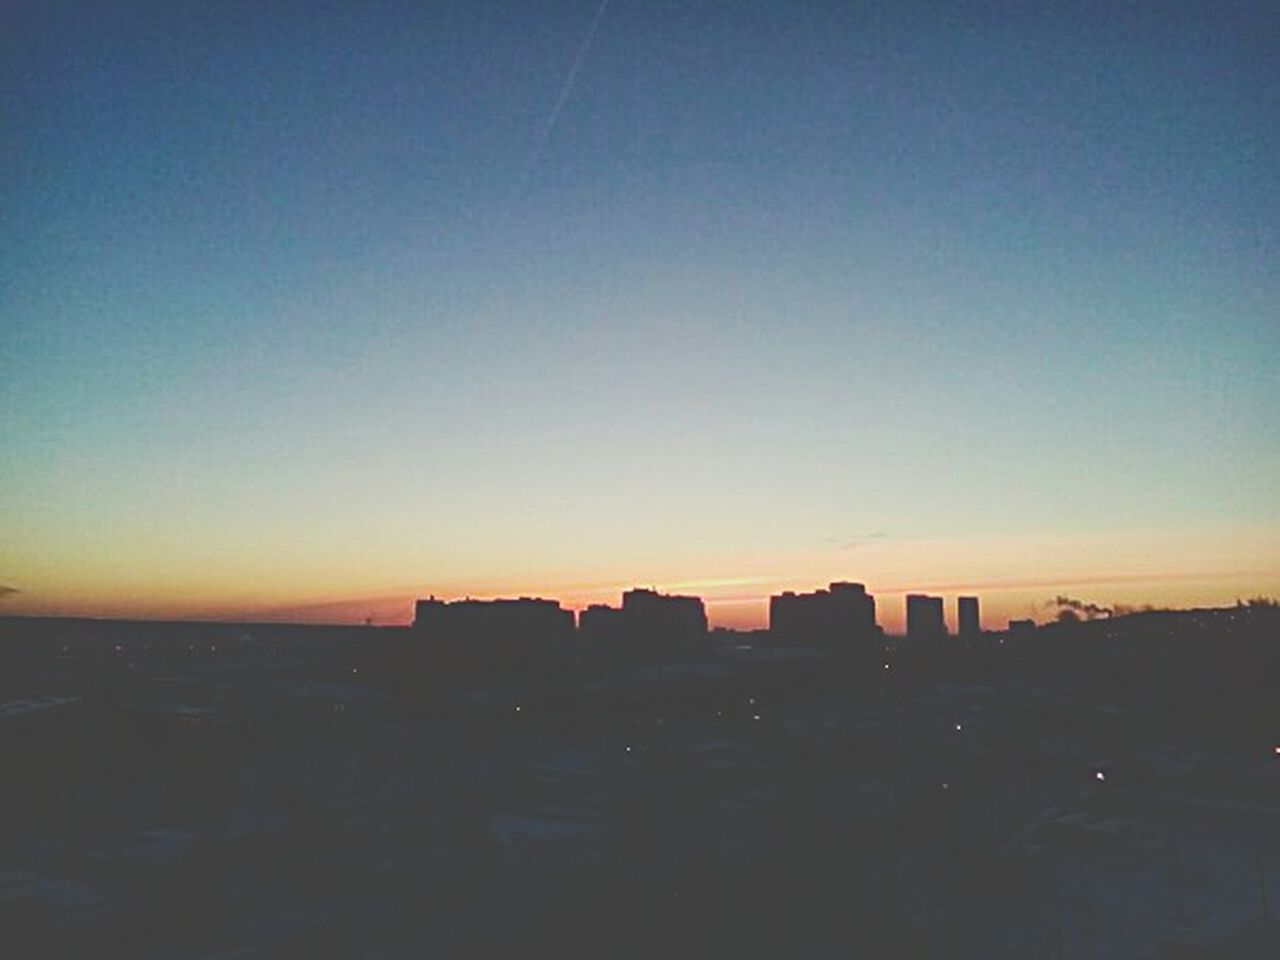 architecture, sunset, building exterior, cityscape, silhouette, built structure, no people, skyscraper, city, sky, outdoors, clear sky, nature, beauty in nature, day